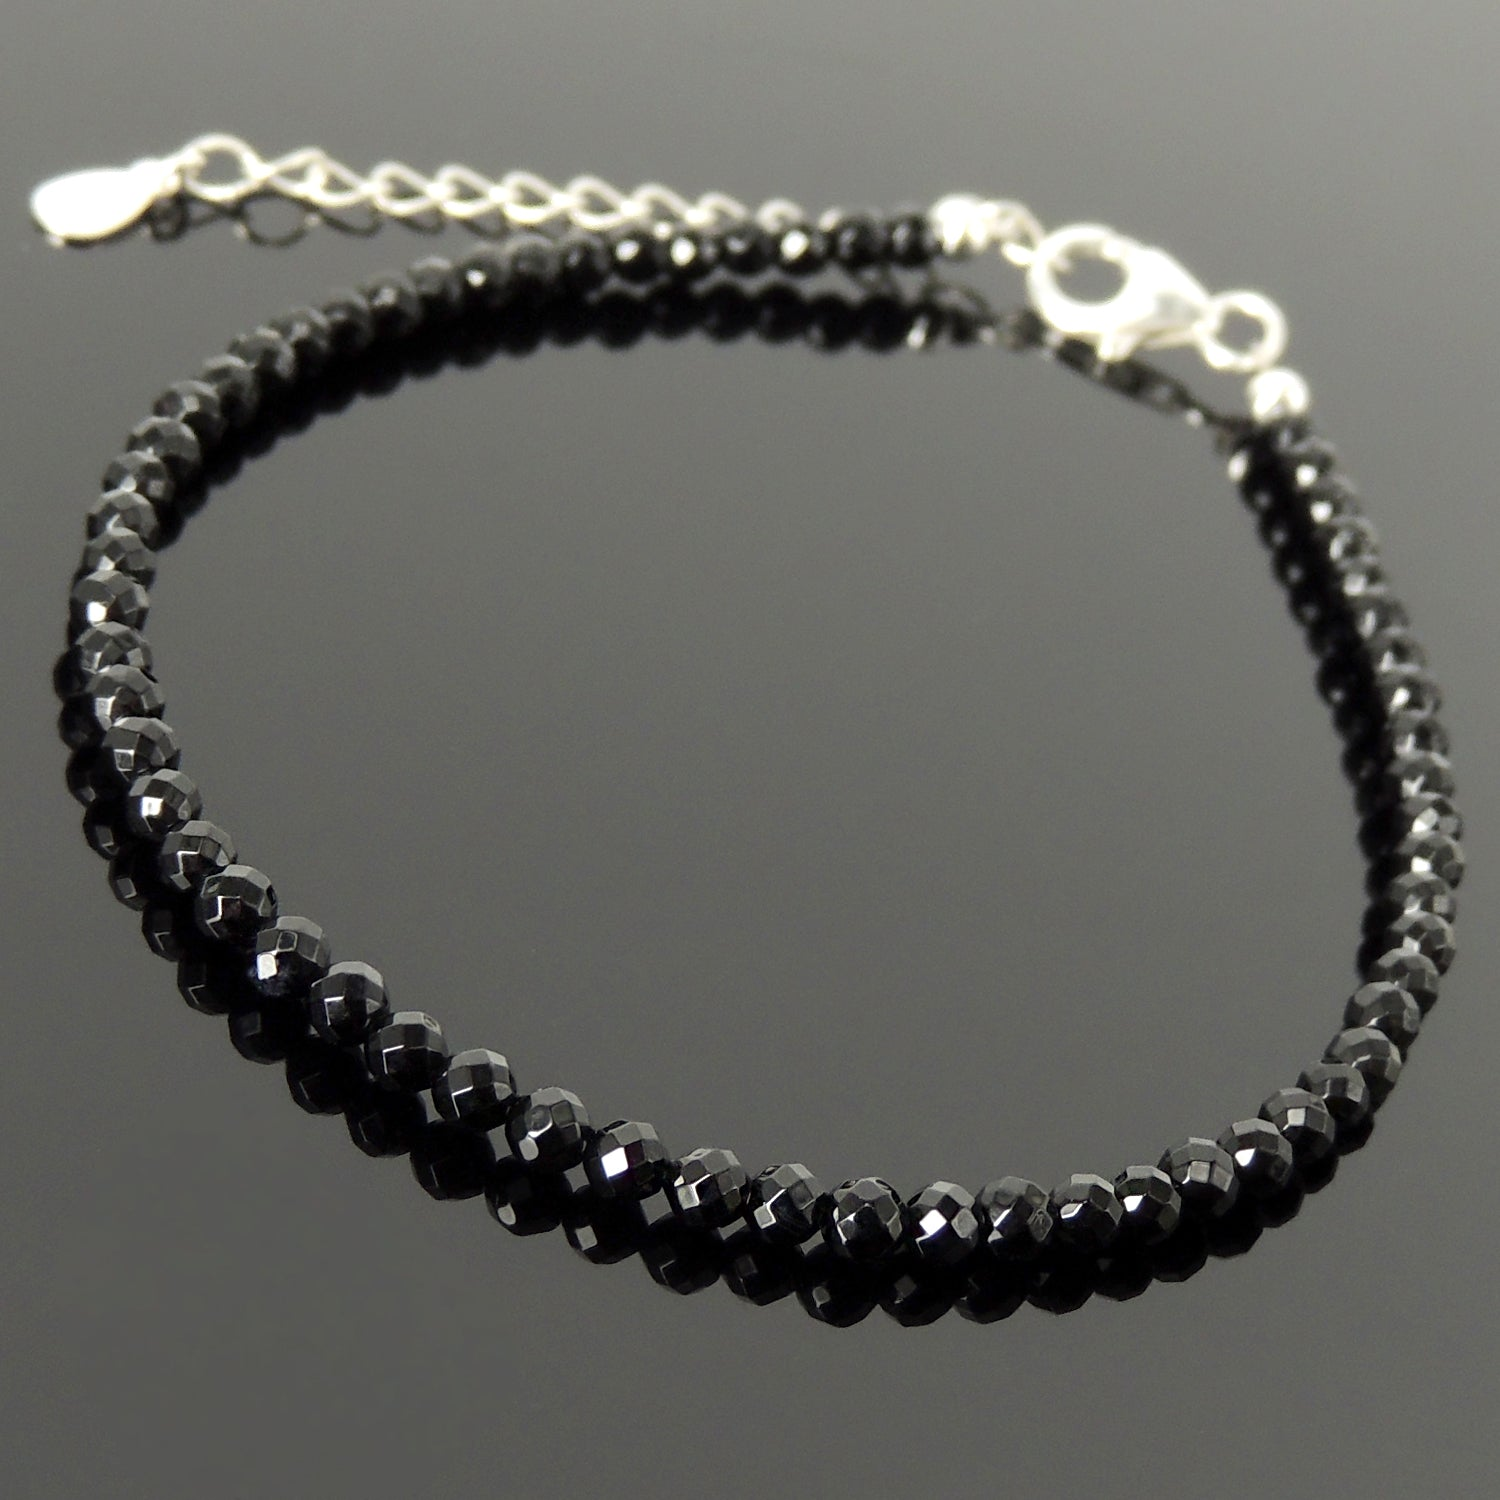 3mm Faceted Bright Black Onyx Anklet Healing Crystal Bracelet with S925 Sterling Silver Chain & Clasp for Daily Wear, Awareness, Mindful Meditation AN036